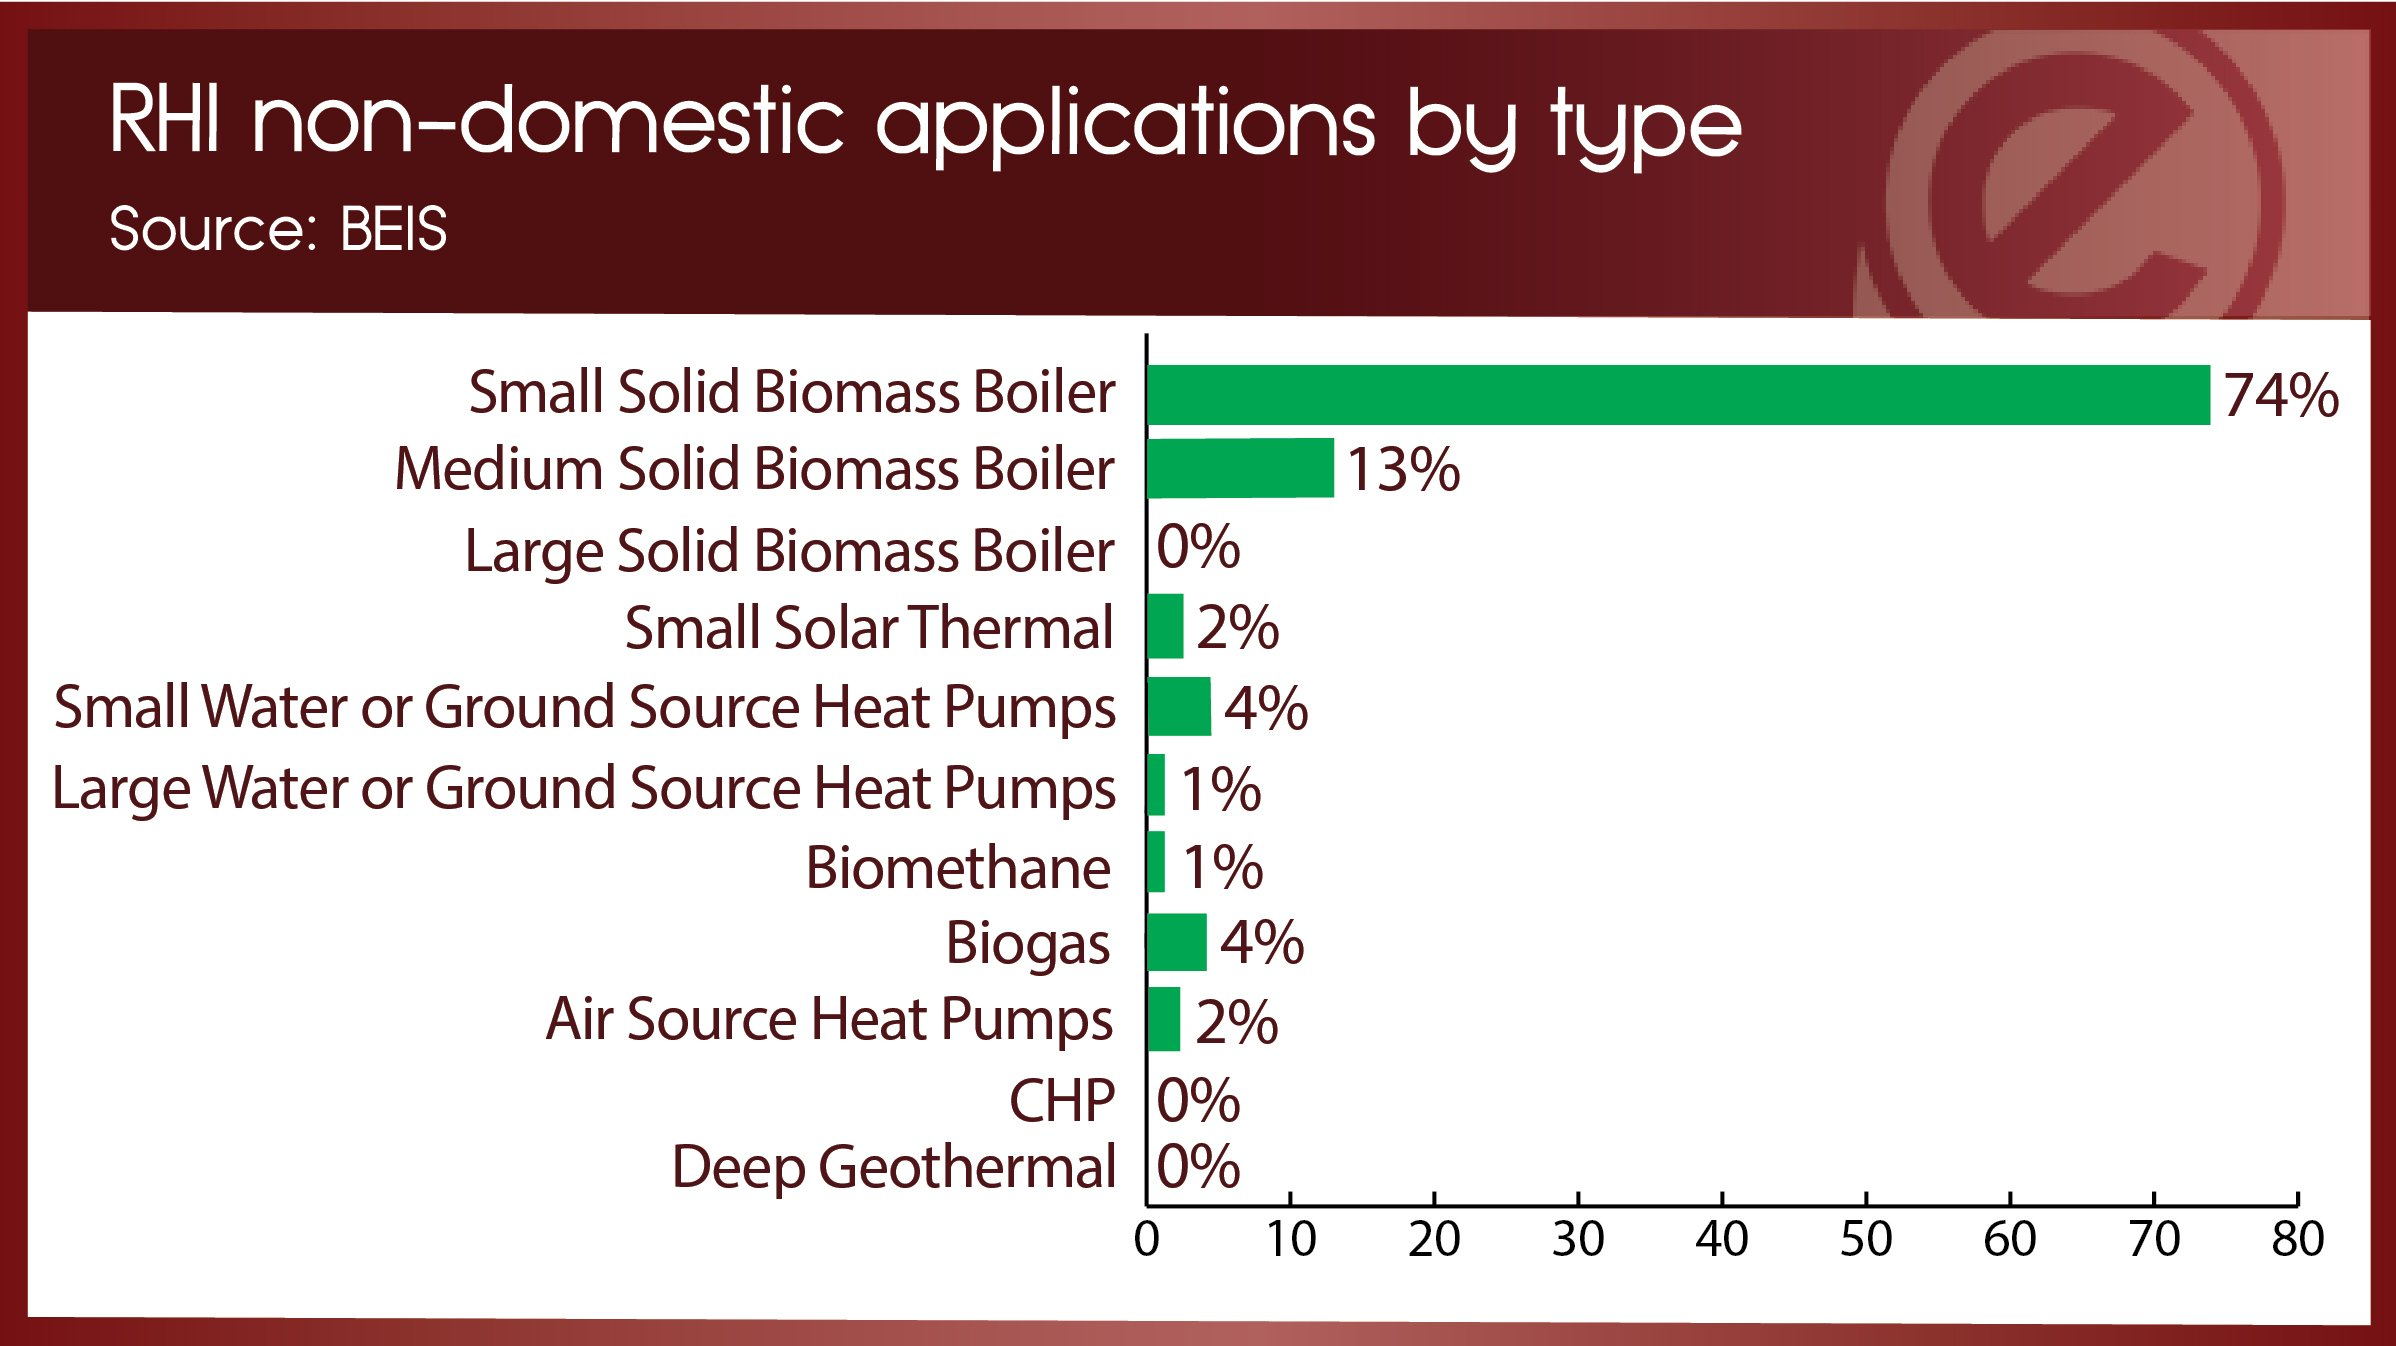 RHI non-domestic applications by type